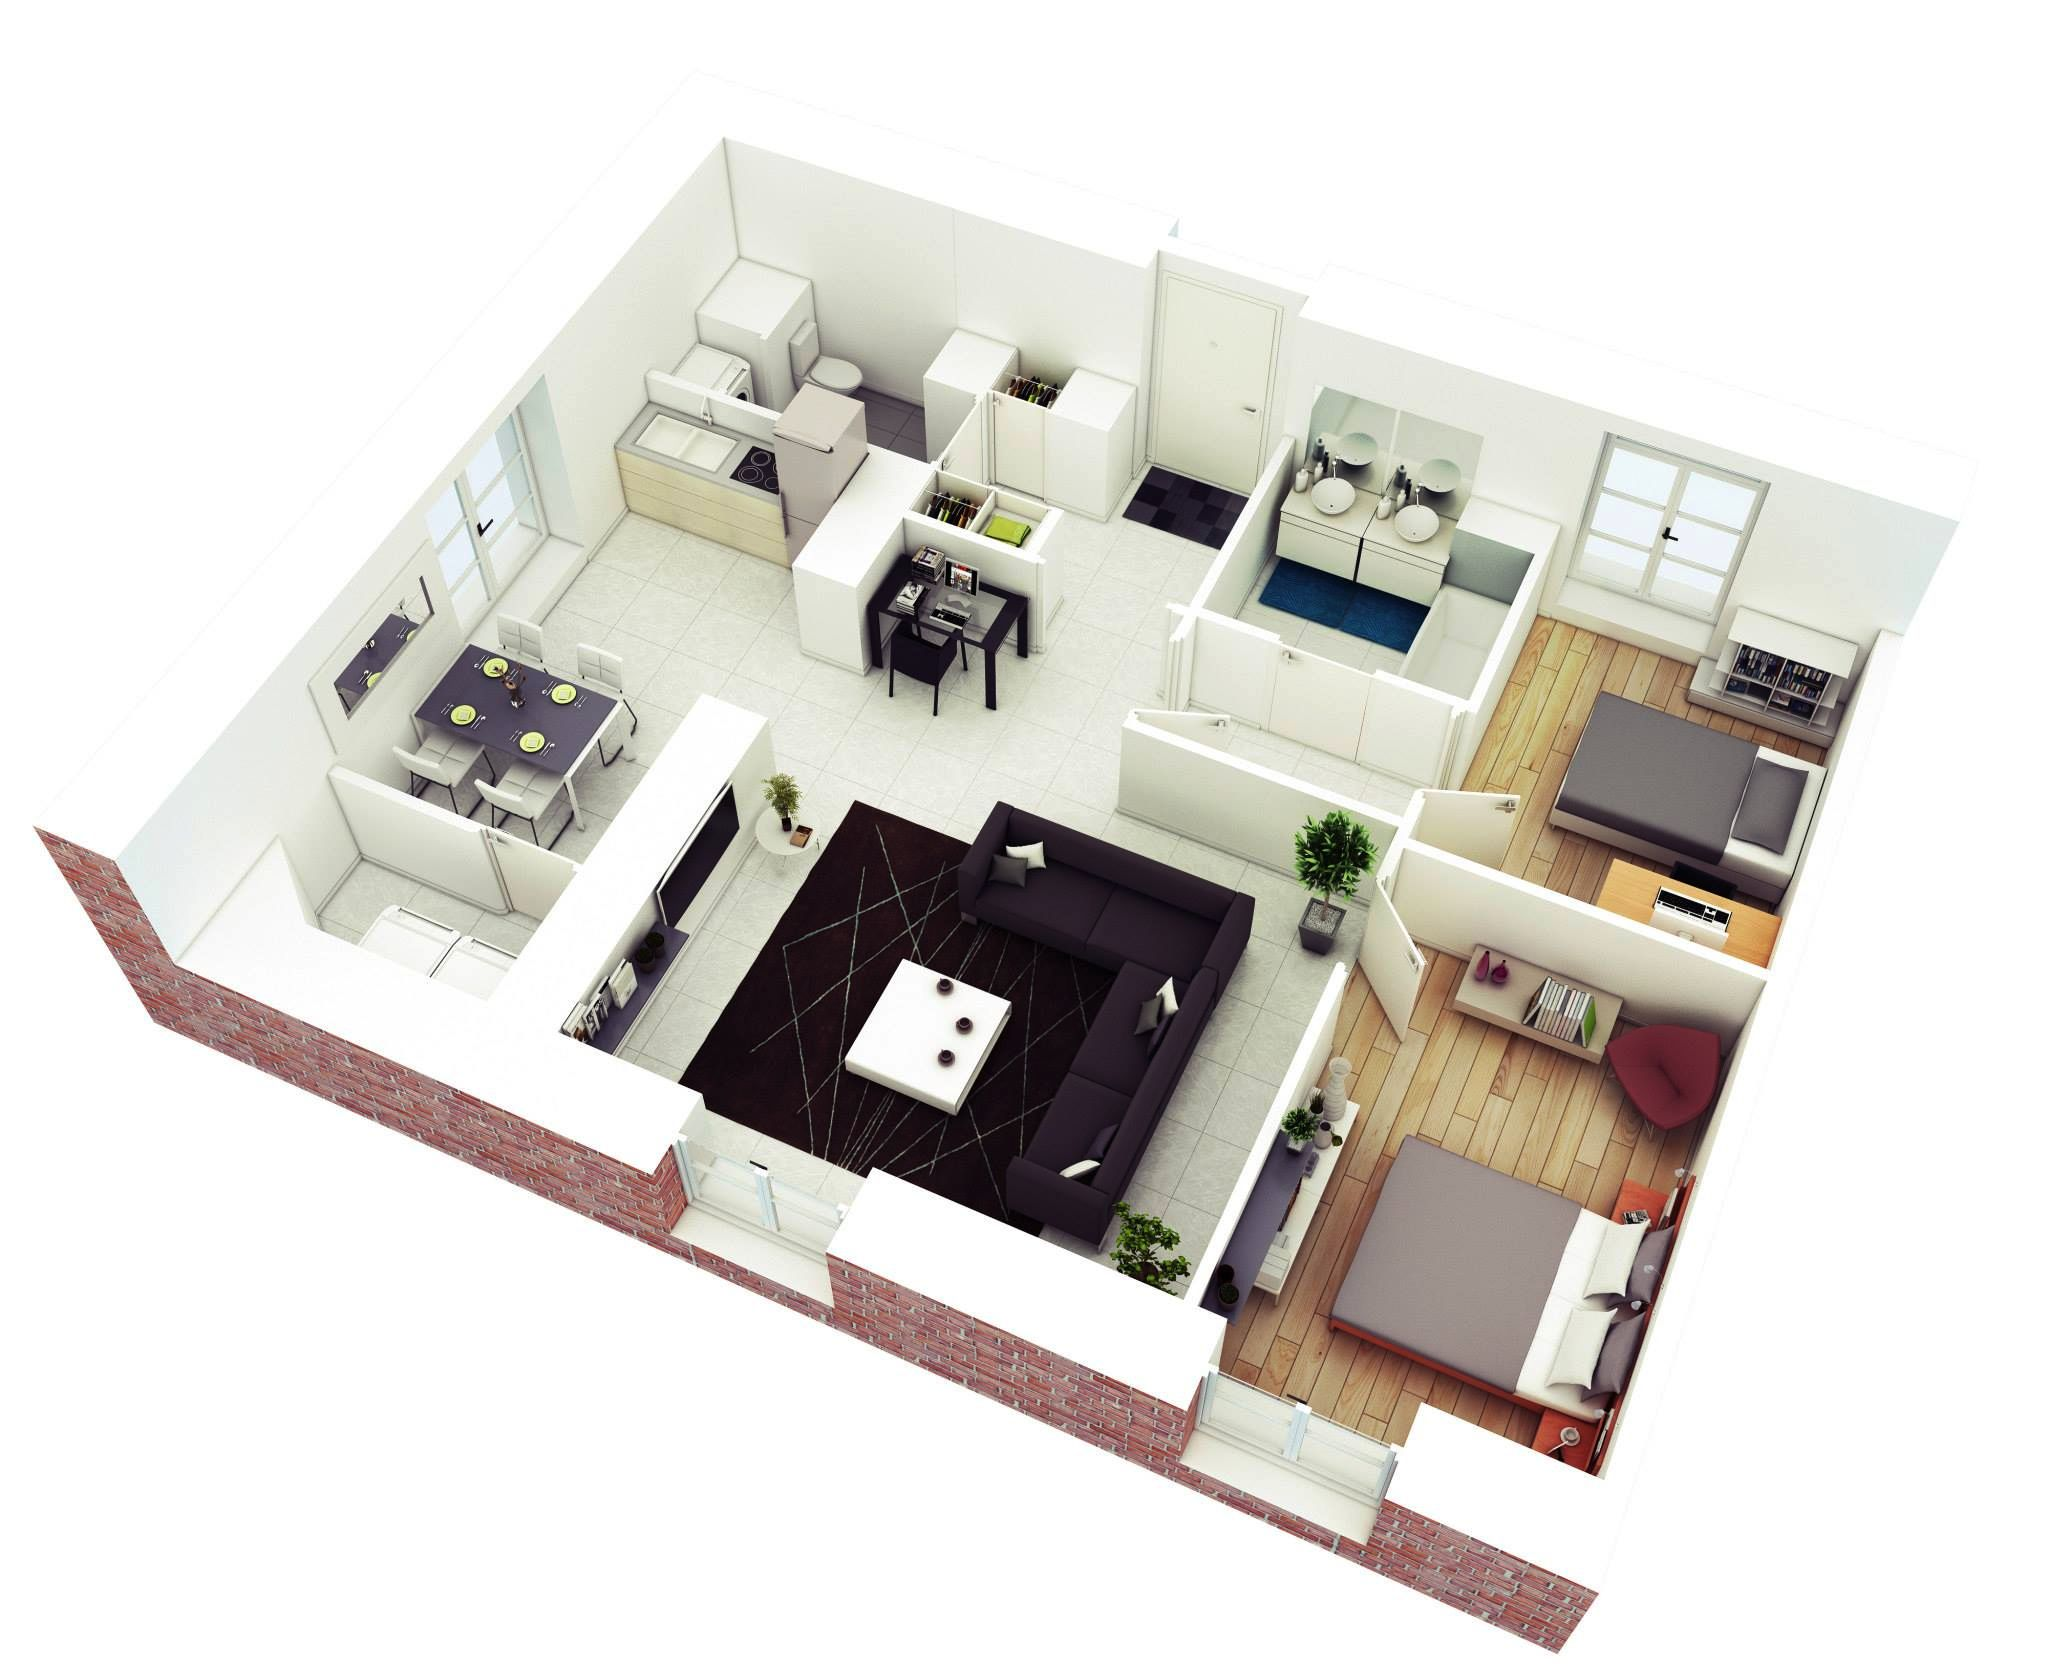 2 bedroom floor plans Understanding 3D Floor Plans